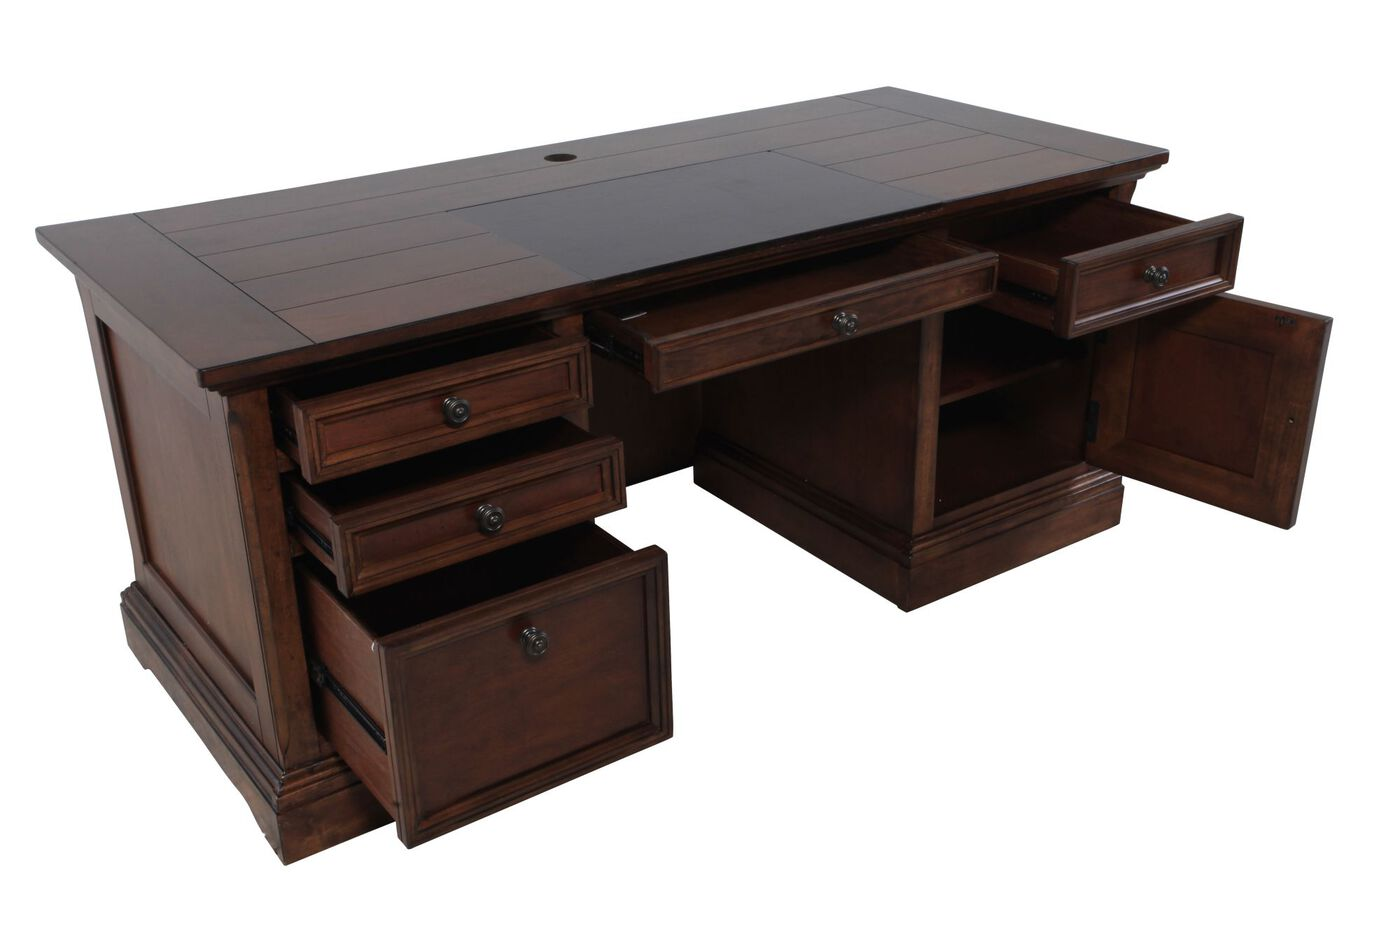 Ashley gaylon executive desk mathis brothers furniture - Ashley furniture office desk ...